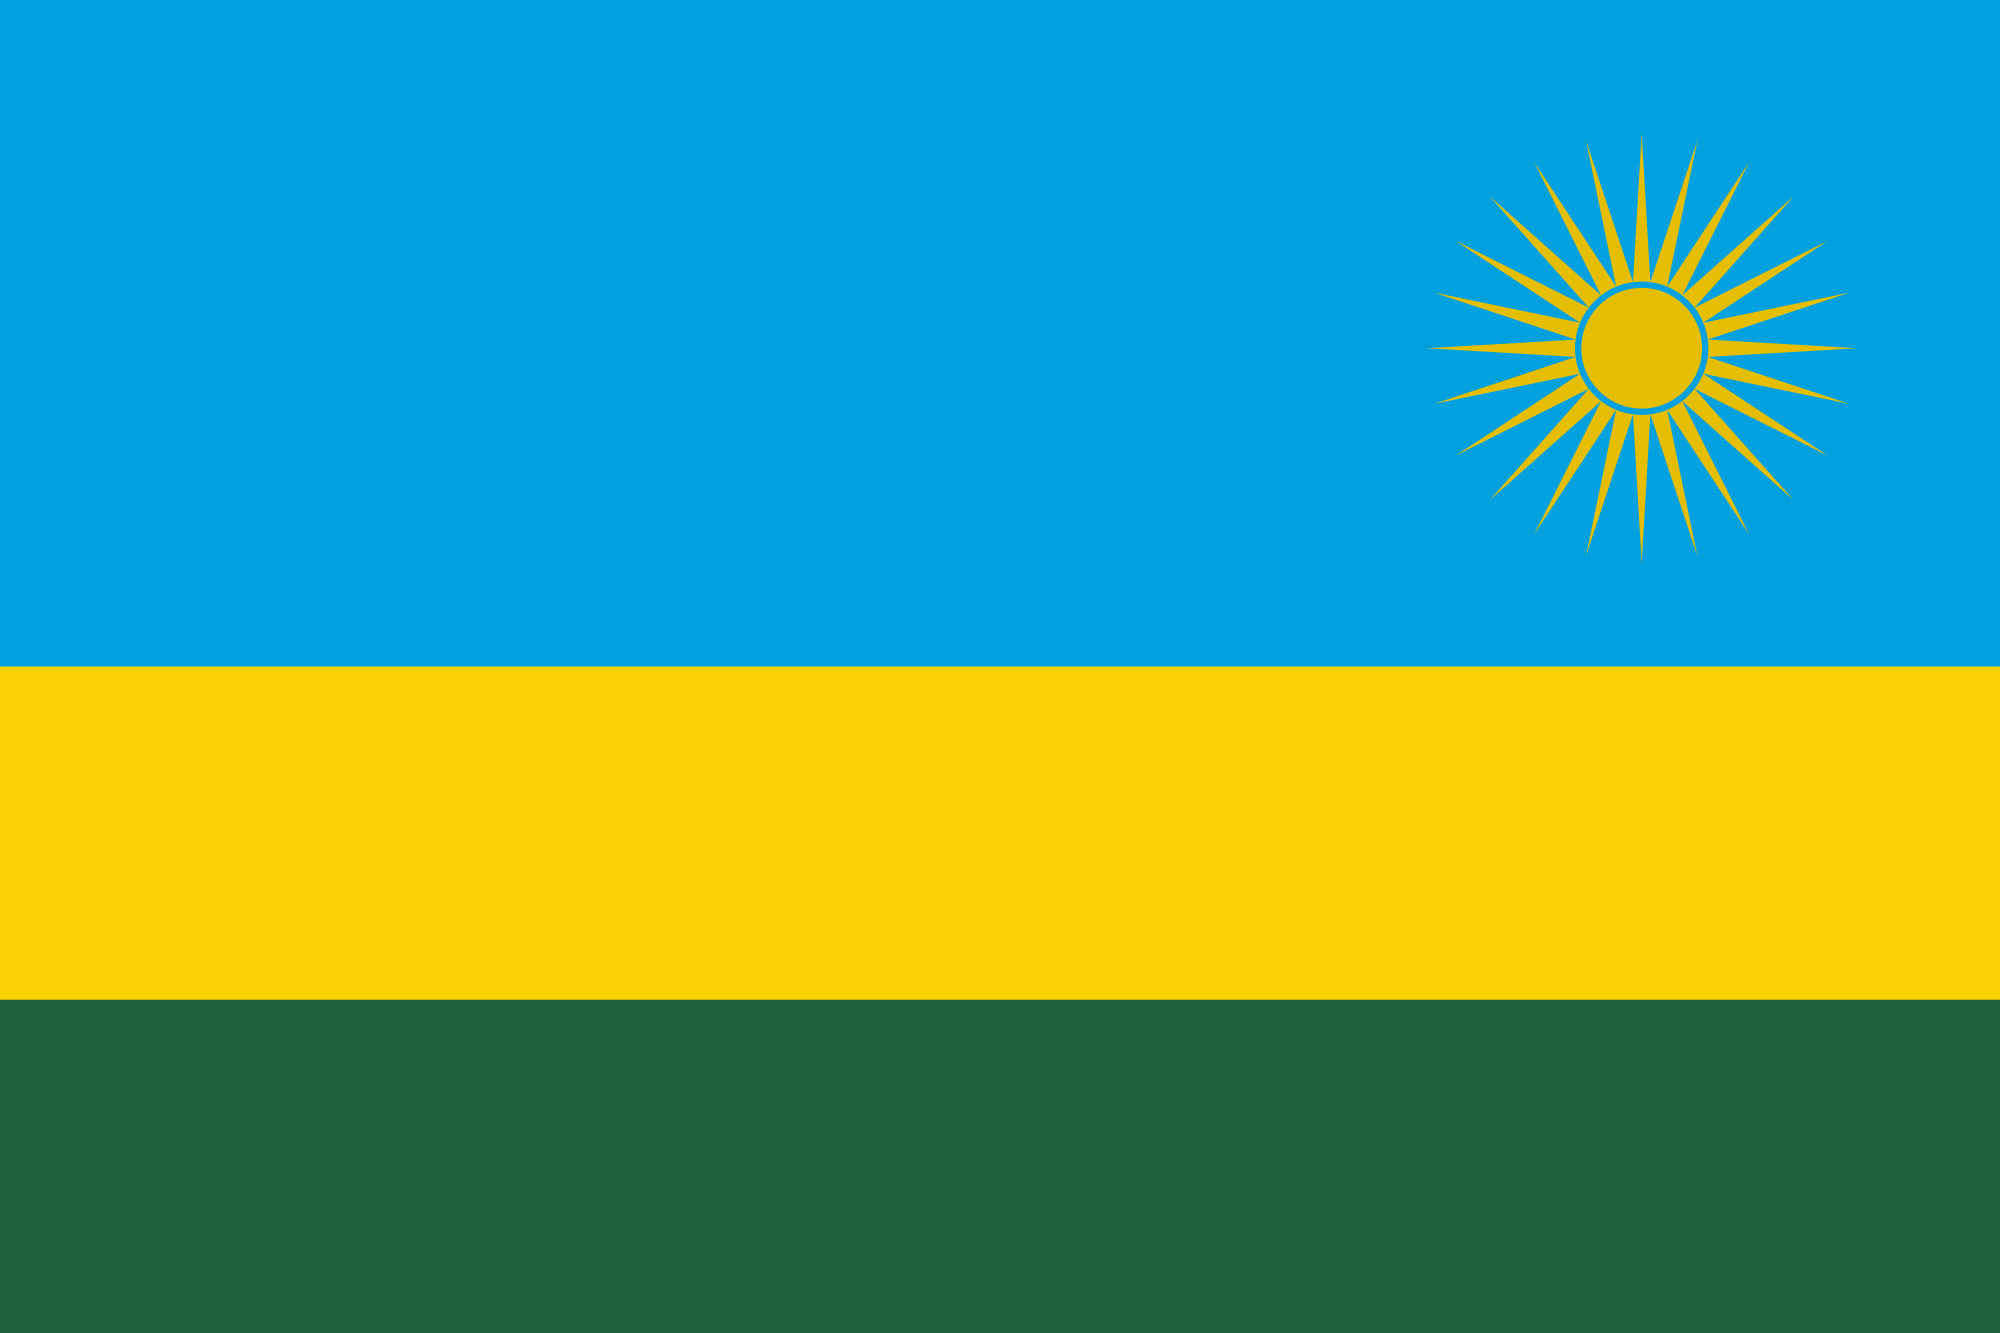 Rwanda Construction Of 1 9 Mw Rucanzogera Mini Hydropower Project To Begin In 2020 Flags Of The World Rwanda Flag Rwandan Flag